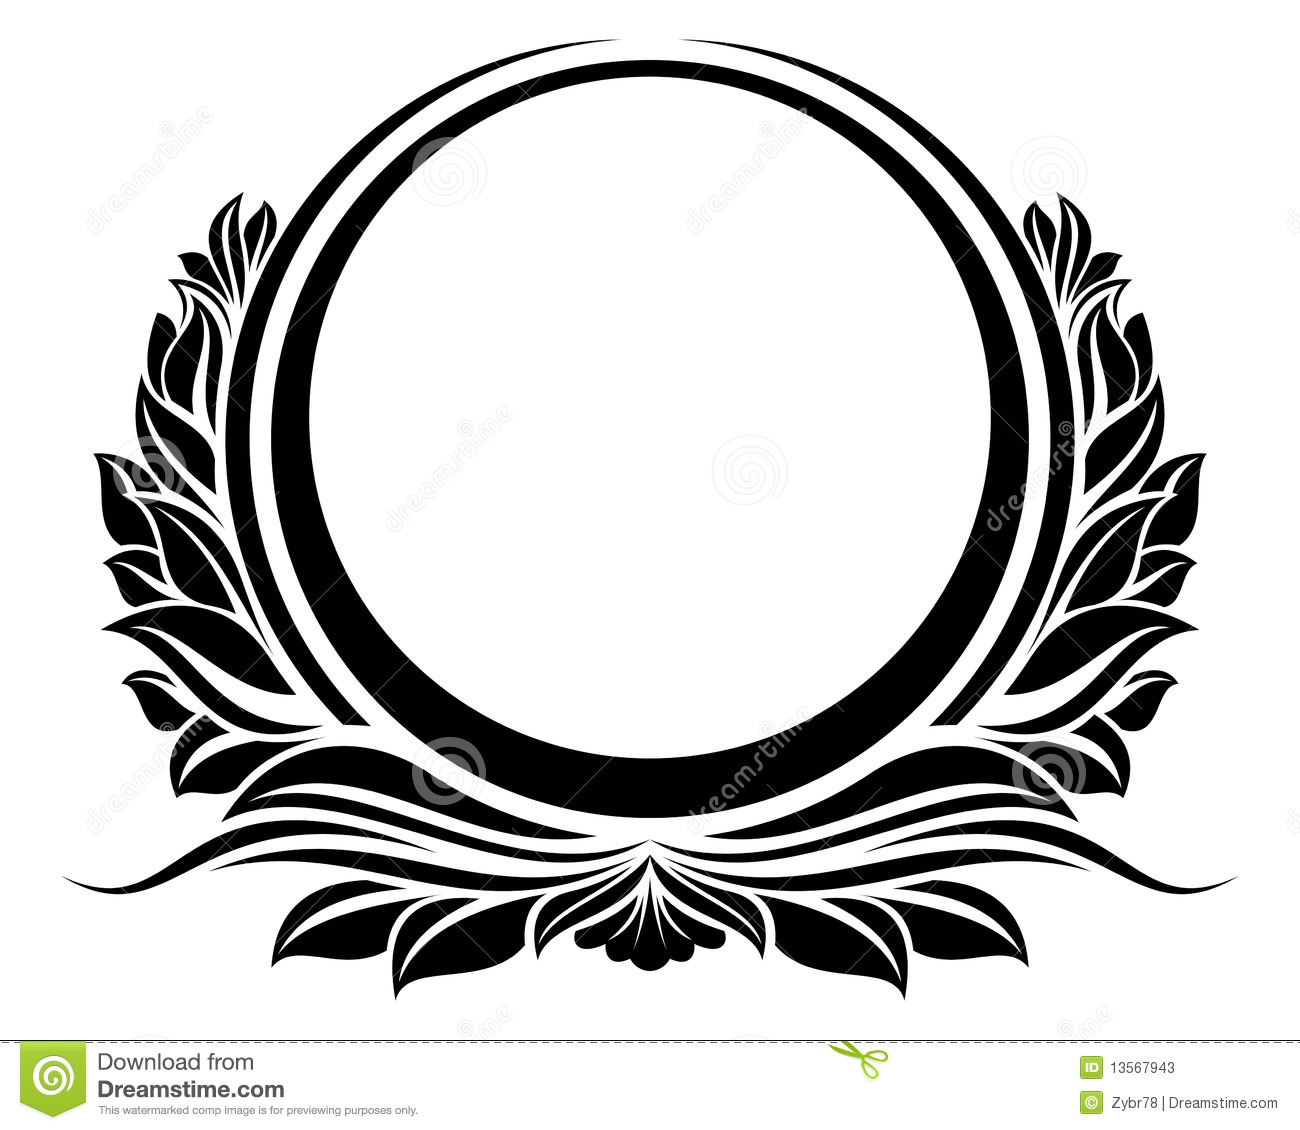 Circle fancy. Banner clipart free download